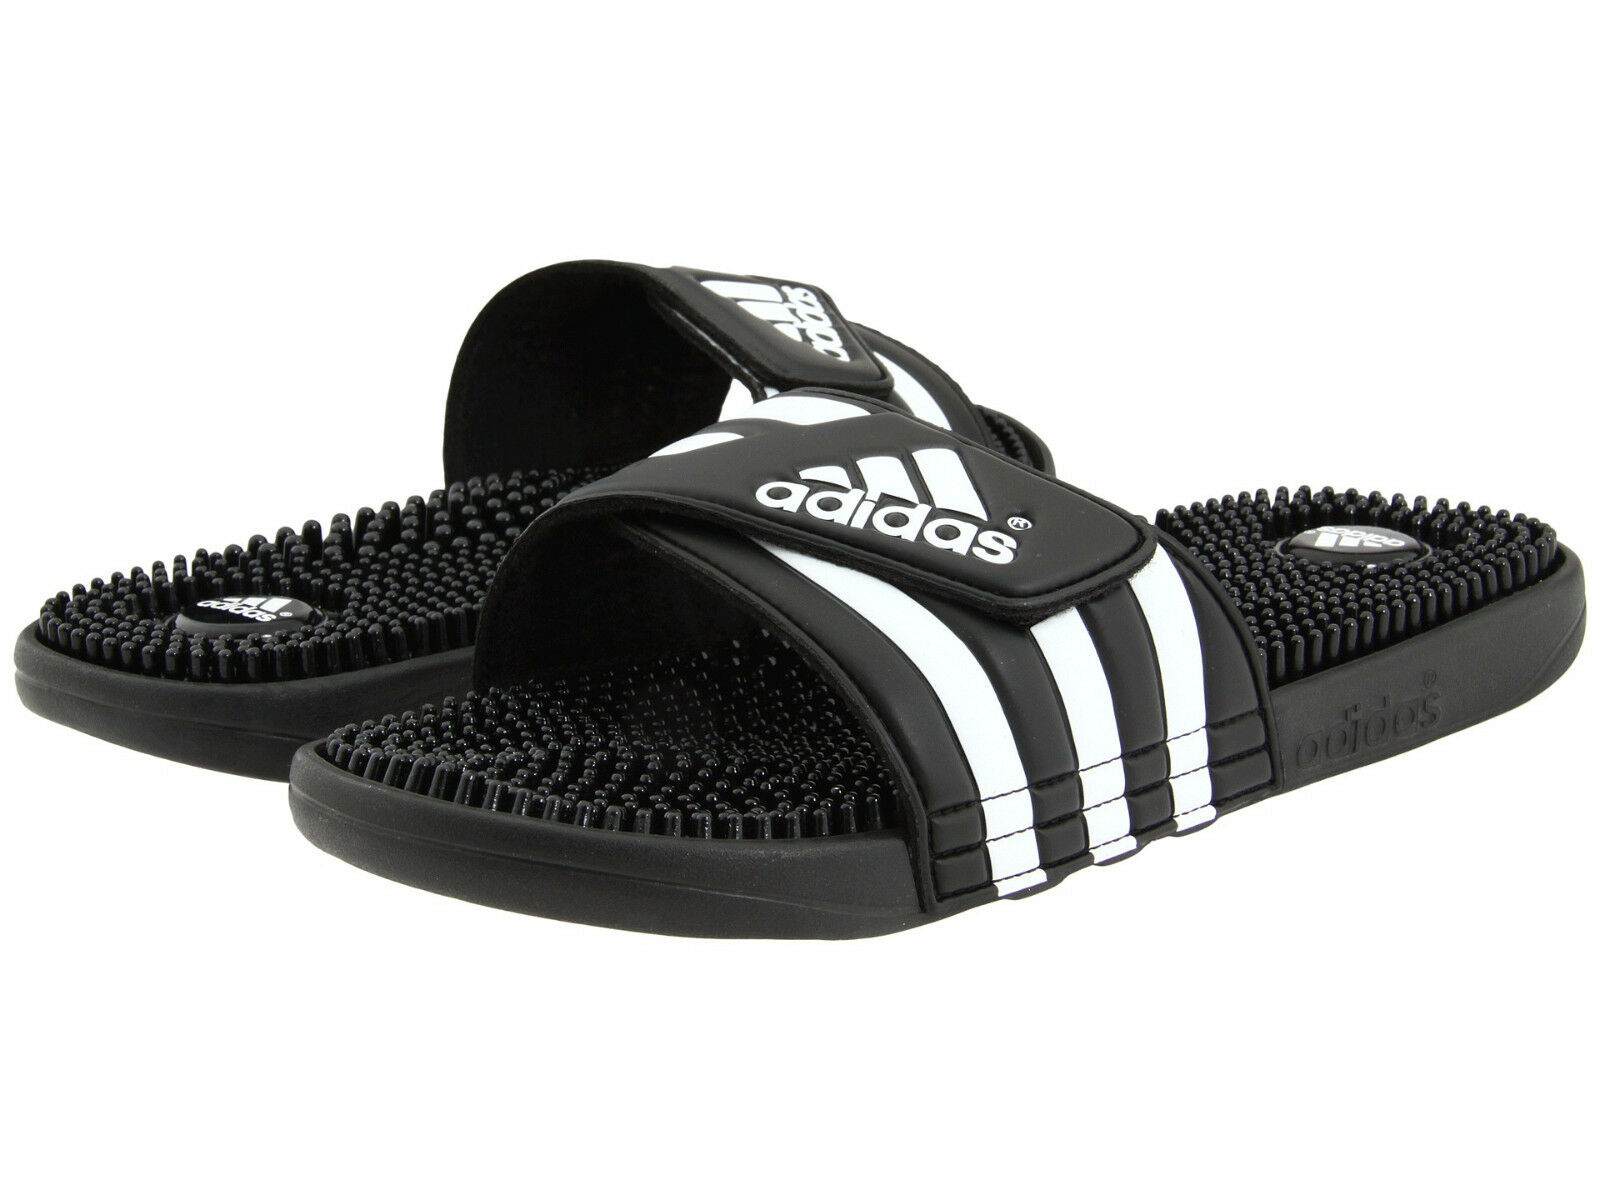 Купить adidas - Mens Adidas Adissage Black Slides Shower Sandals Athletic Sport 078260 Size 6-15